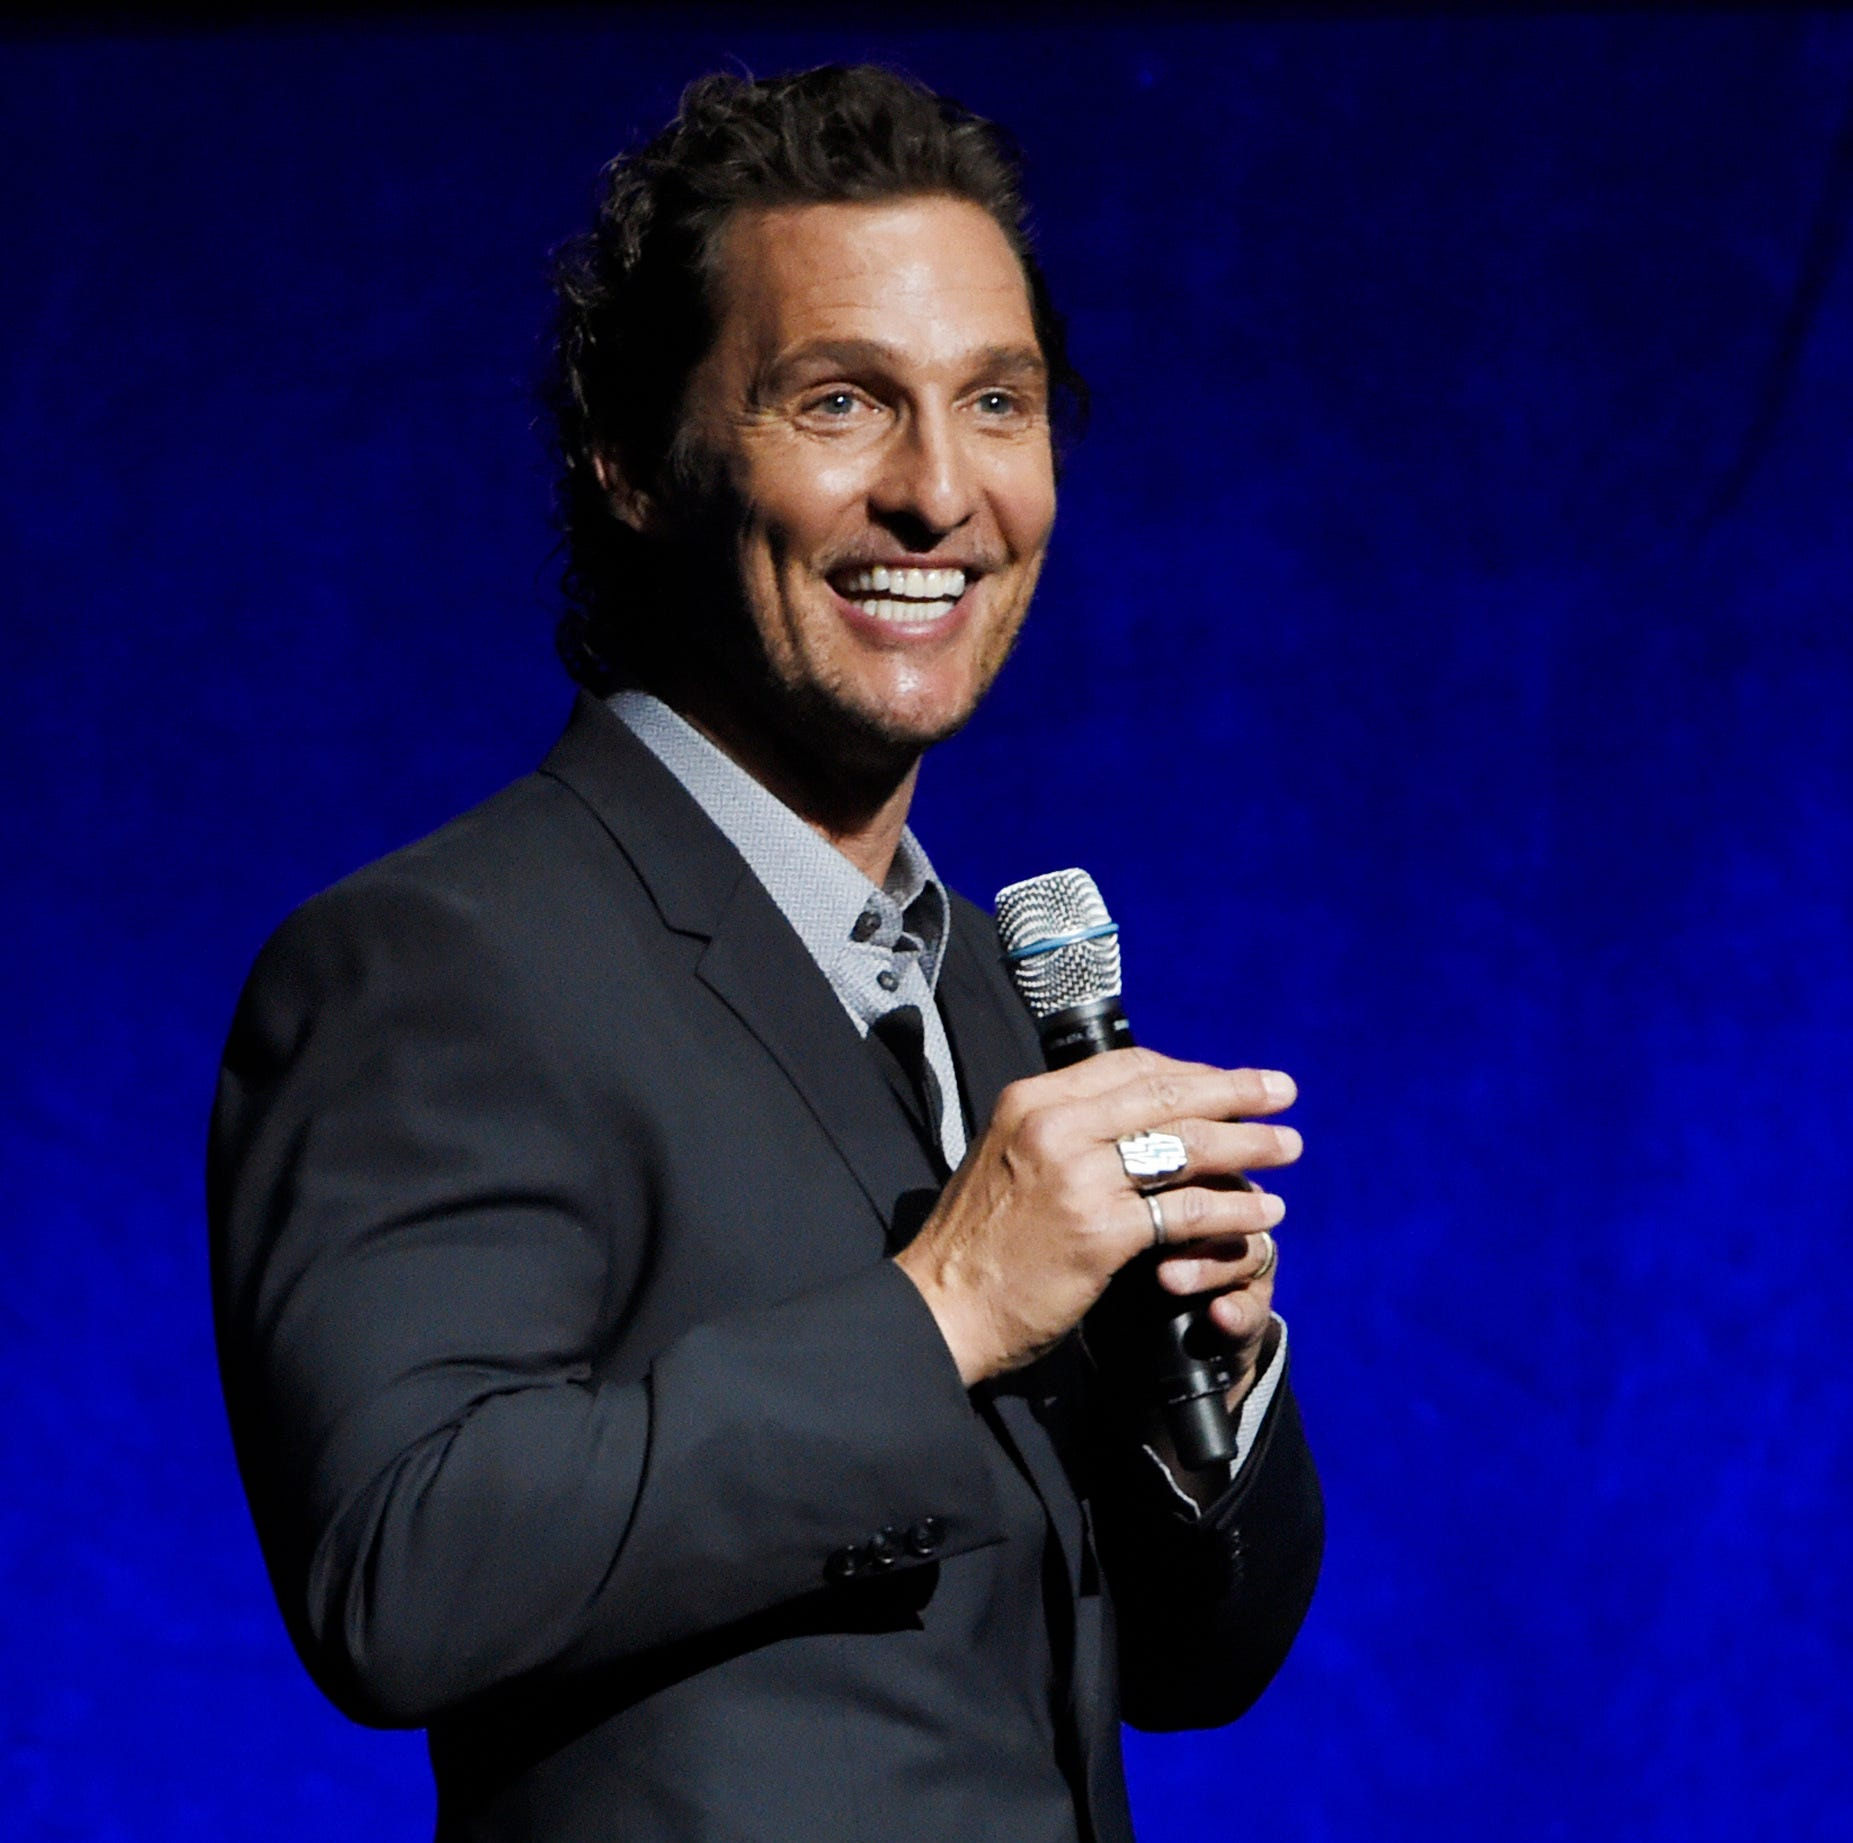 "FILE - In this April 23, 2018 file photo, Matthew McConaughey, a cast member in the upcoming film ""White Boy Rick,"" speaks during the Sony Pictures Entertainment presentation at CinemaCon 2018 in Las Vegas. Firefighters, police officers and 911 operators in Houston got a surprise from a famous local as McConaughey delivered a catered lunch as way to give thanks on National First Responders Day. (Photo by Chris Pizzello/Invision/AP, File) ORG XMIT: NYET105"